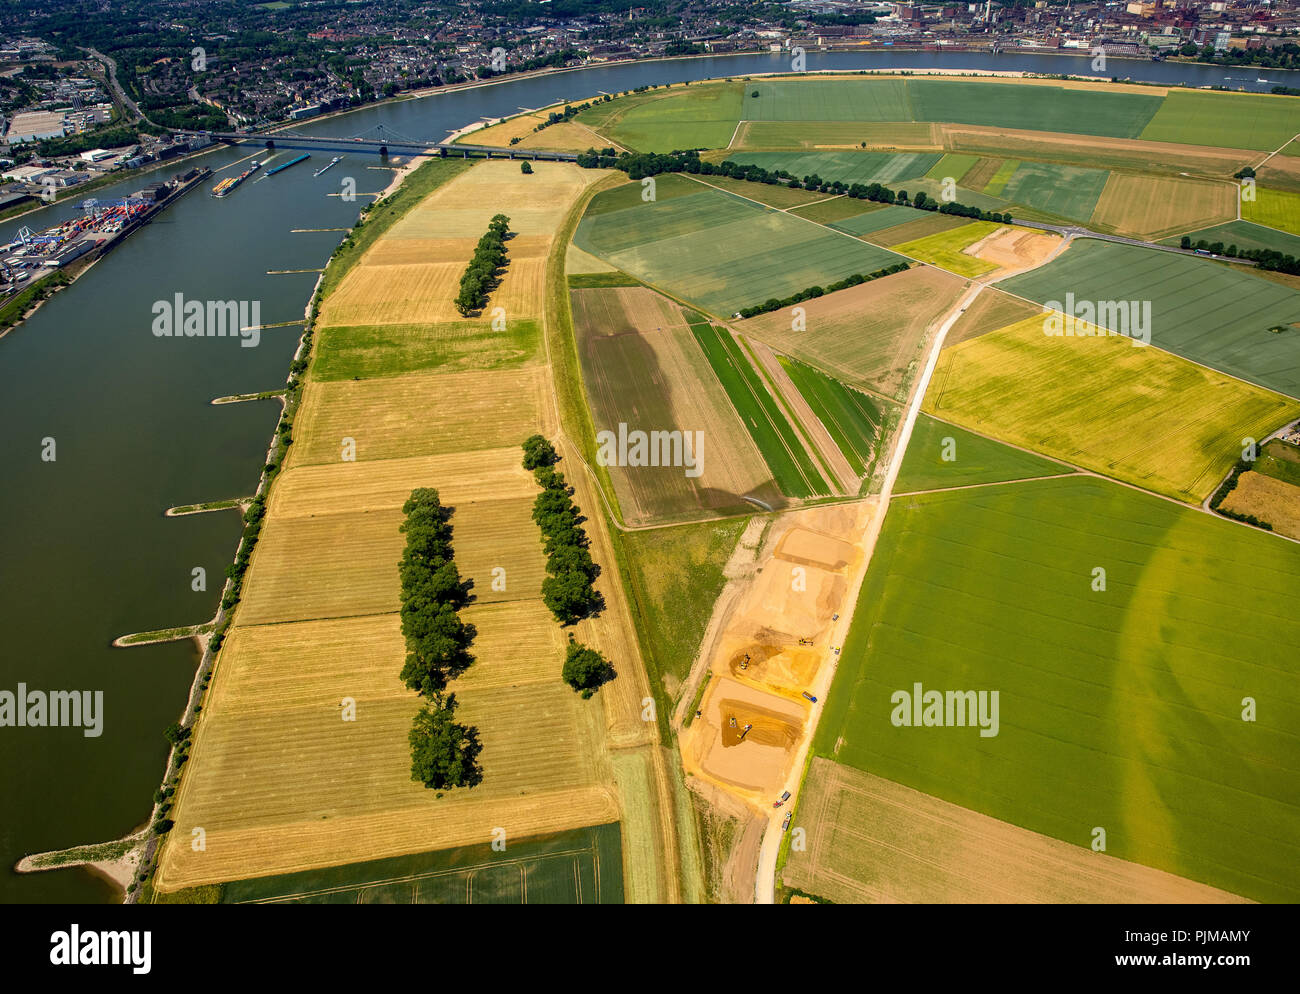 Flood protection by a new Rhine dike in the south of Duisburg, Rheindeich near Mündelheim and opposite Krefeld-Uerdingen at the bridge of the federal highway 288, fields, agriculture, Duisburg, Rhine view, Ruhr area, North Rhine-Westphalia, Germany Stock Photo